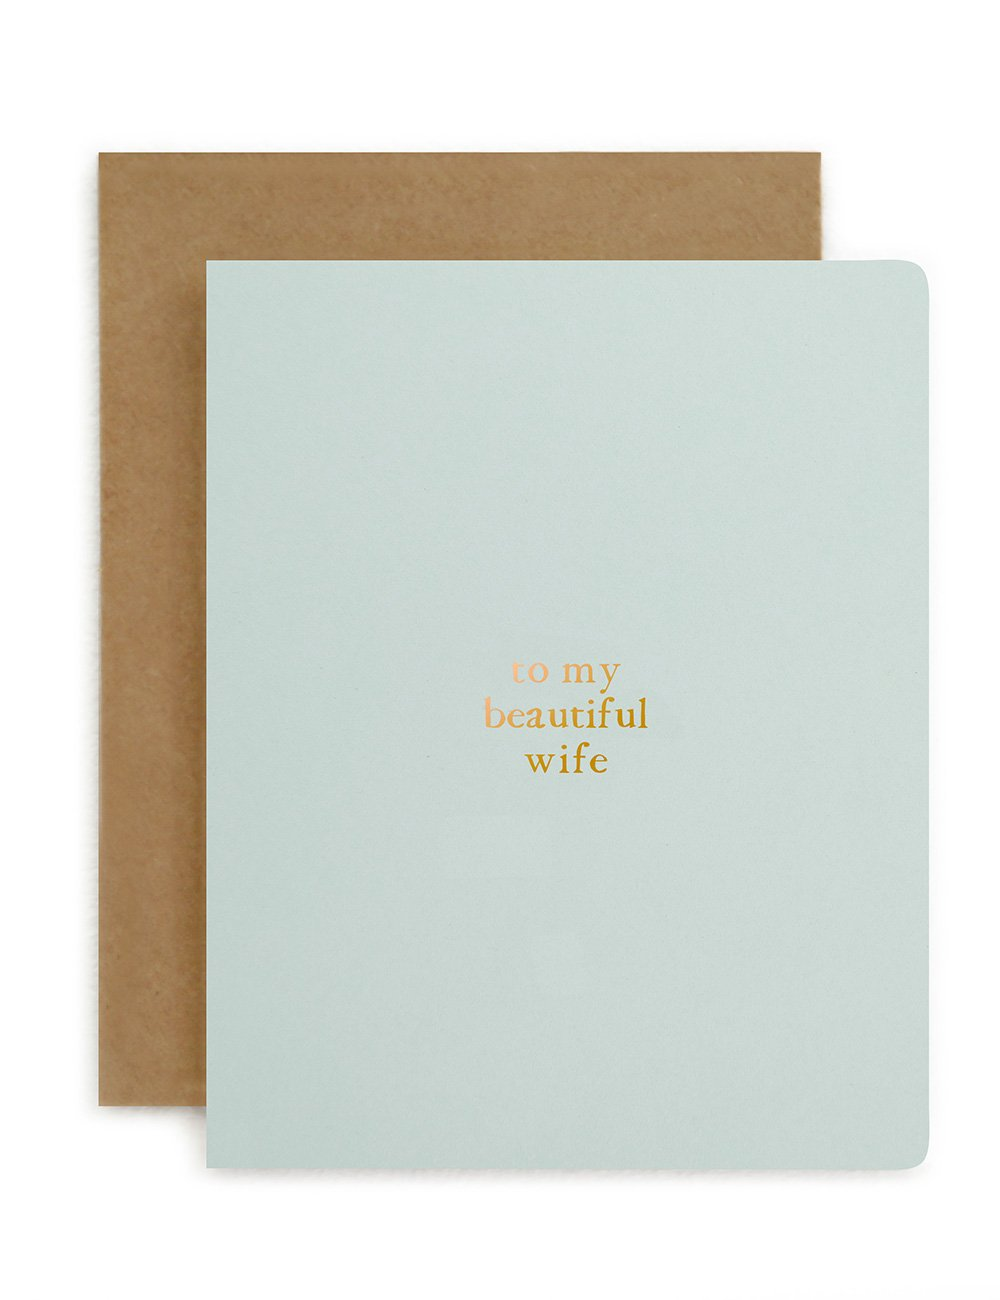 To my Beautiful Wife Card